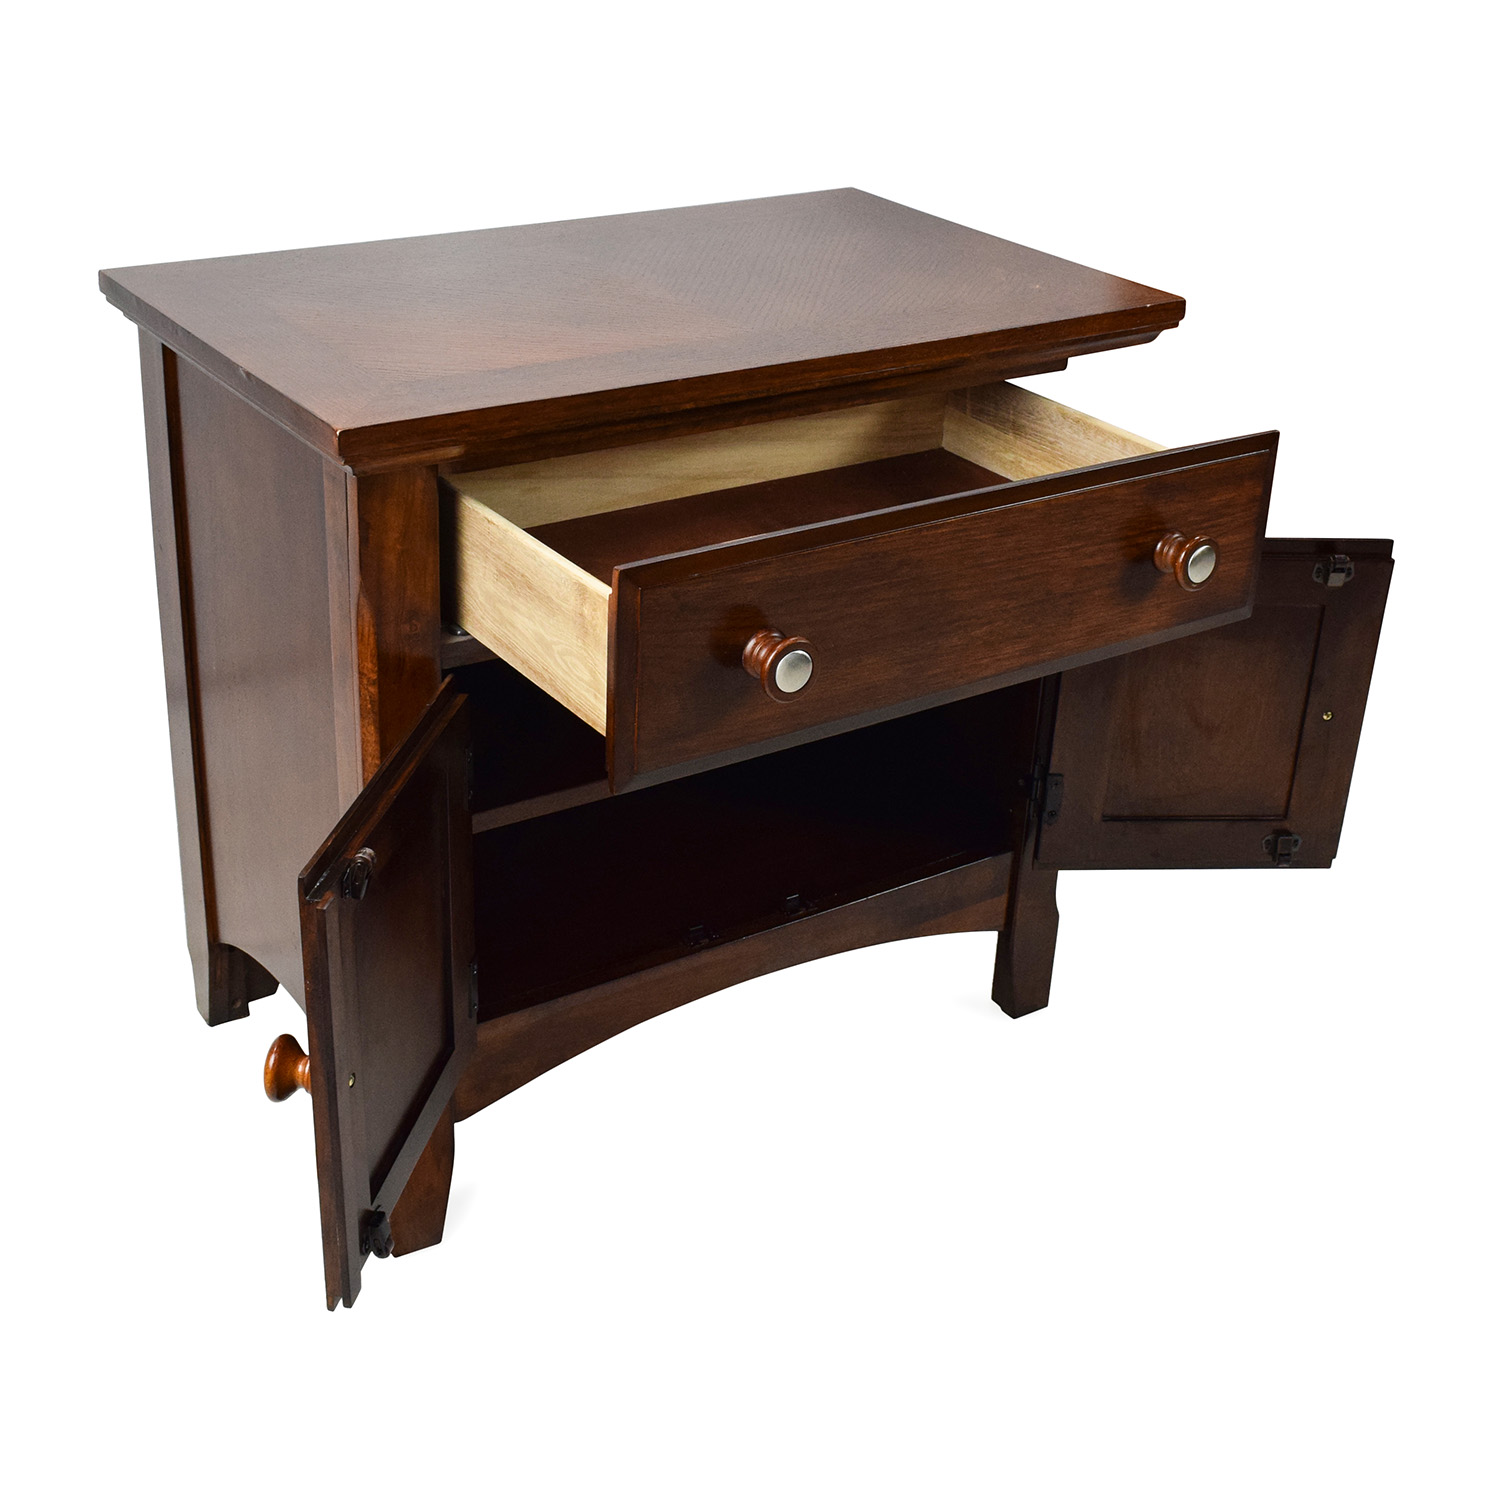 50 Off Walter Of Wabash Walter Of Wabash Bedside Table Tables